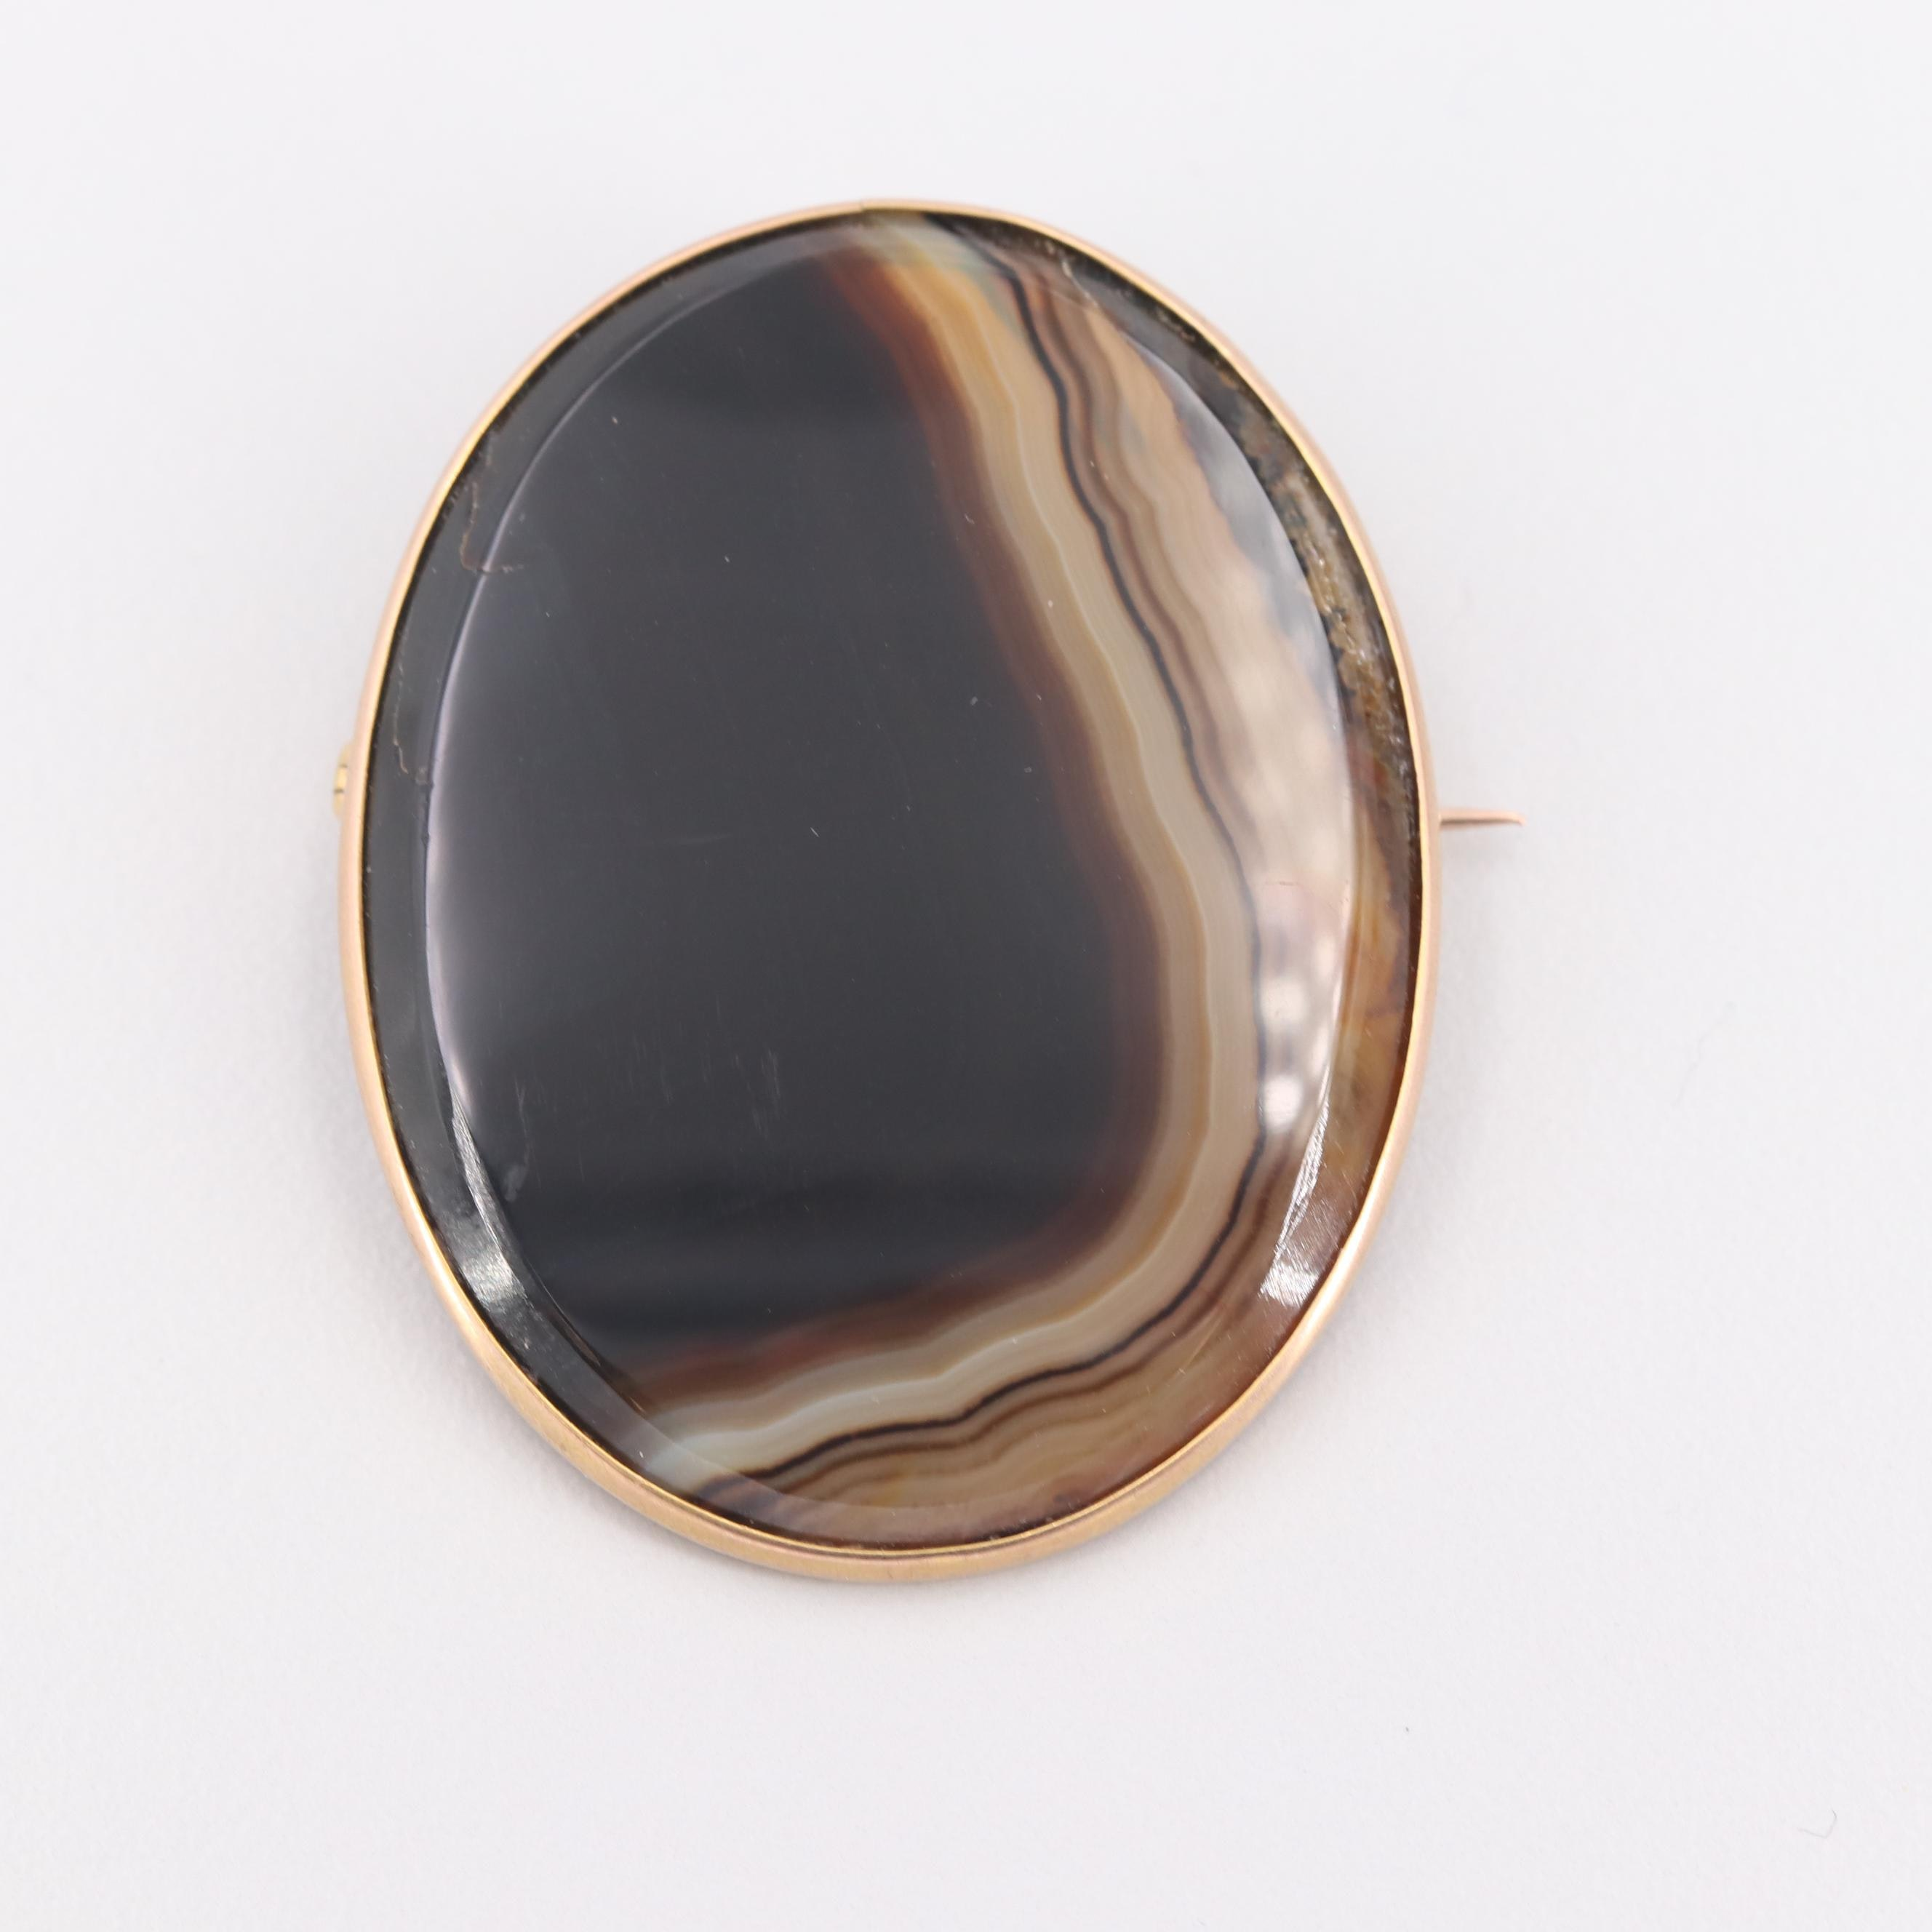 9K Yellow Gold Agate Brooch